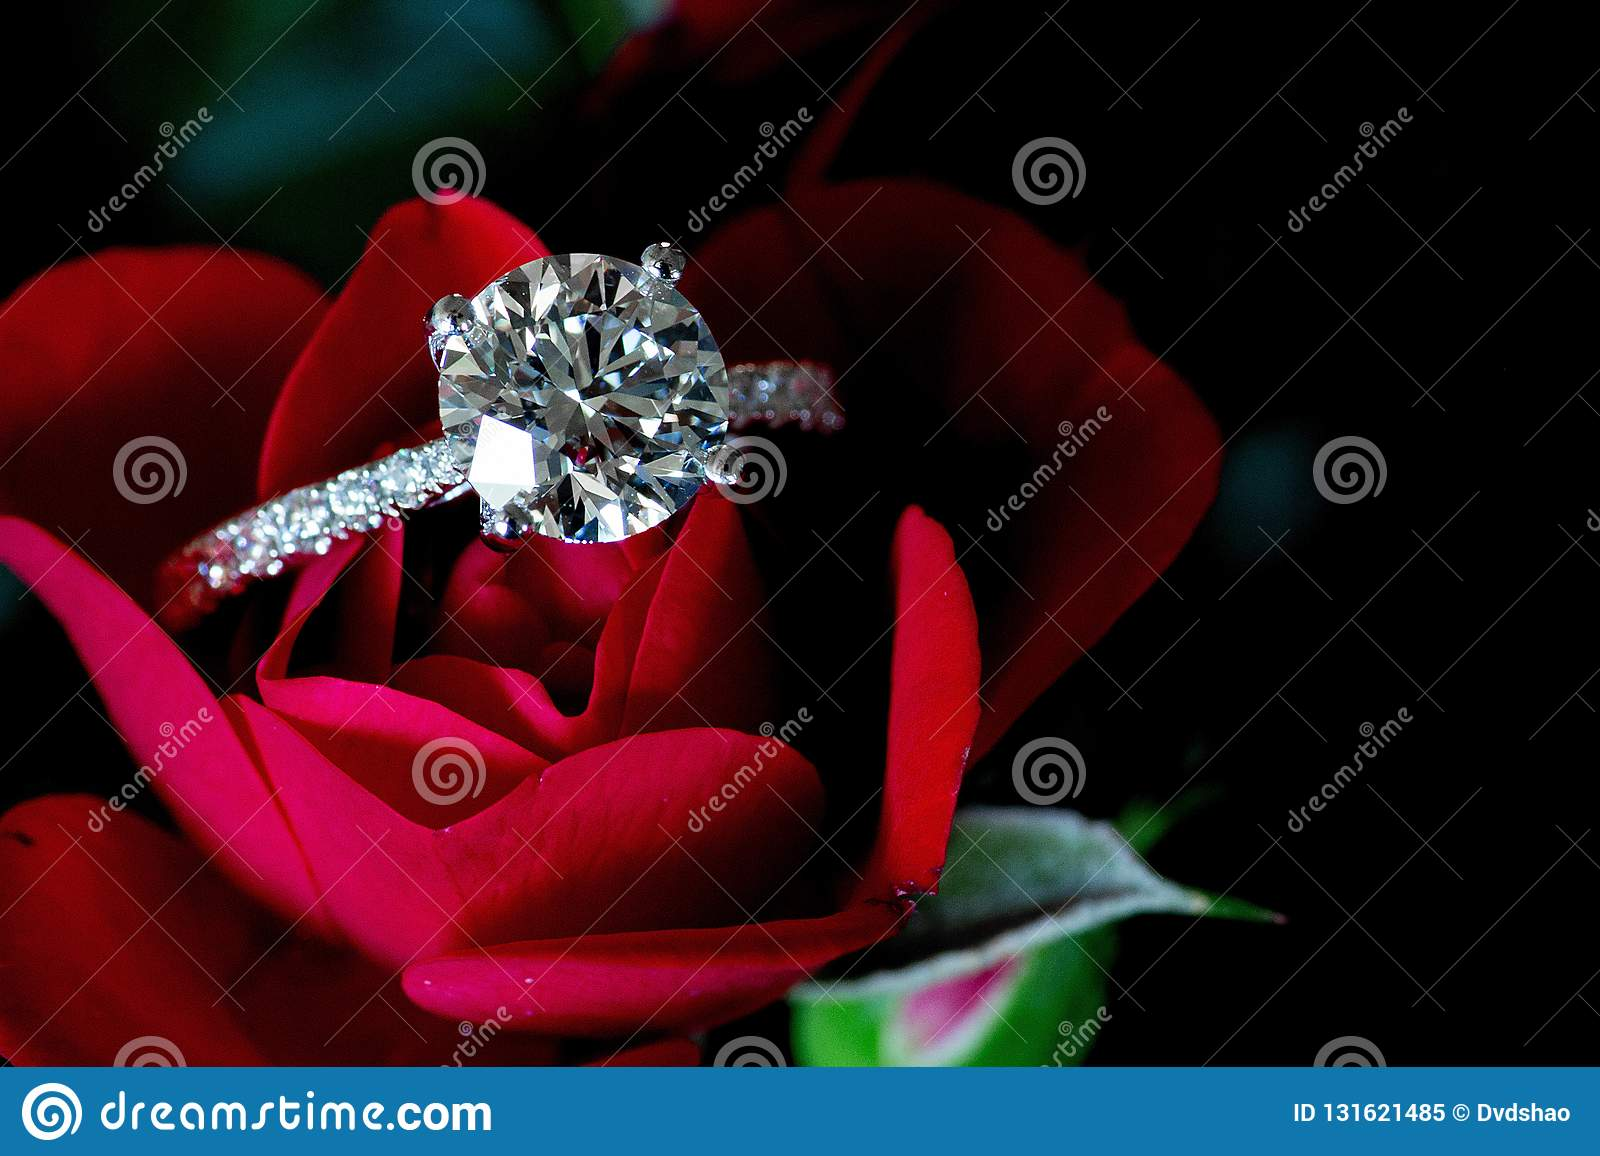 Platina Diamond Ring On Red Rose